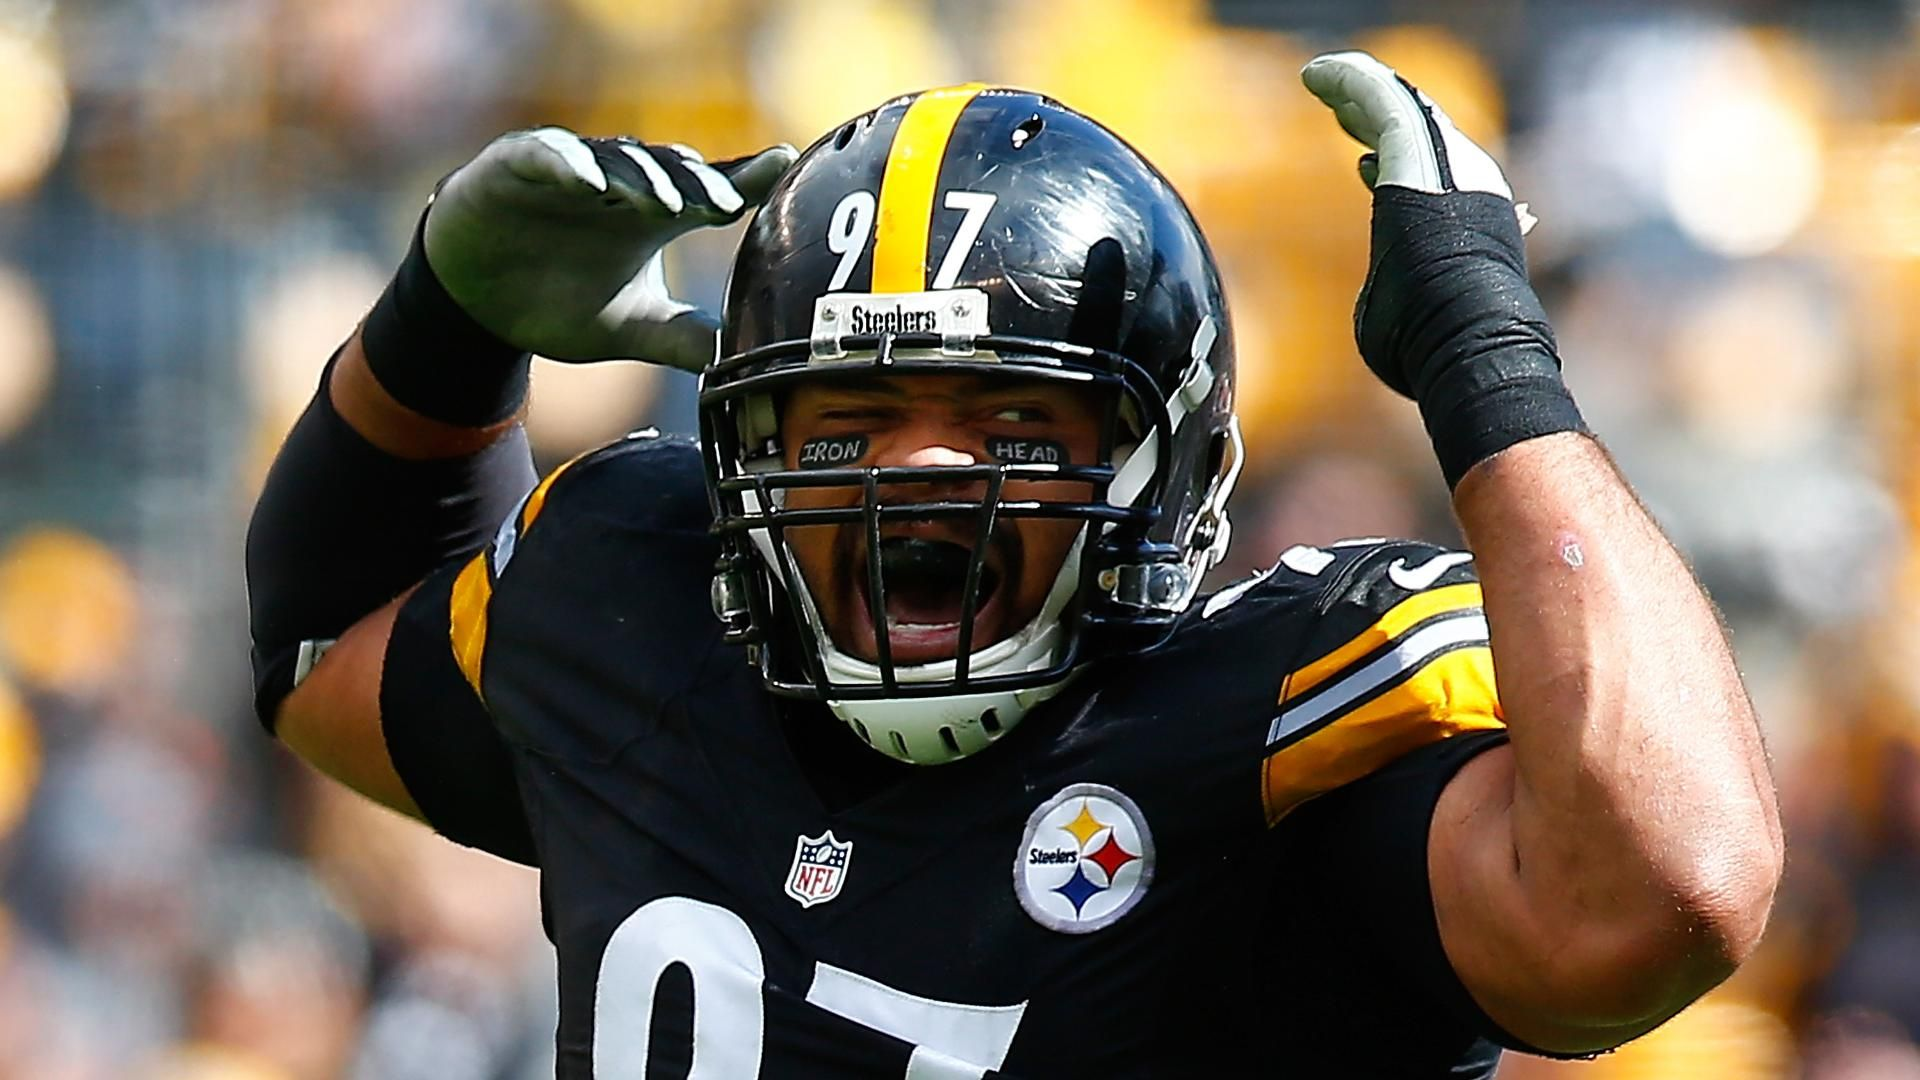 https://secure.espncdn.com/combiner/i?img=/media/motion/2015/1028/dm_151028_nfl_steelers_nation_news/dm_151028_nfl_steelers_nation_news.jpg